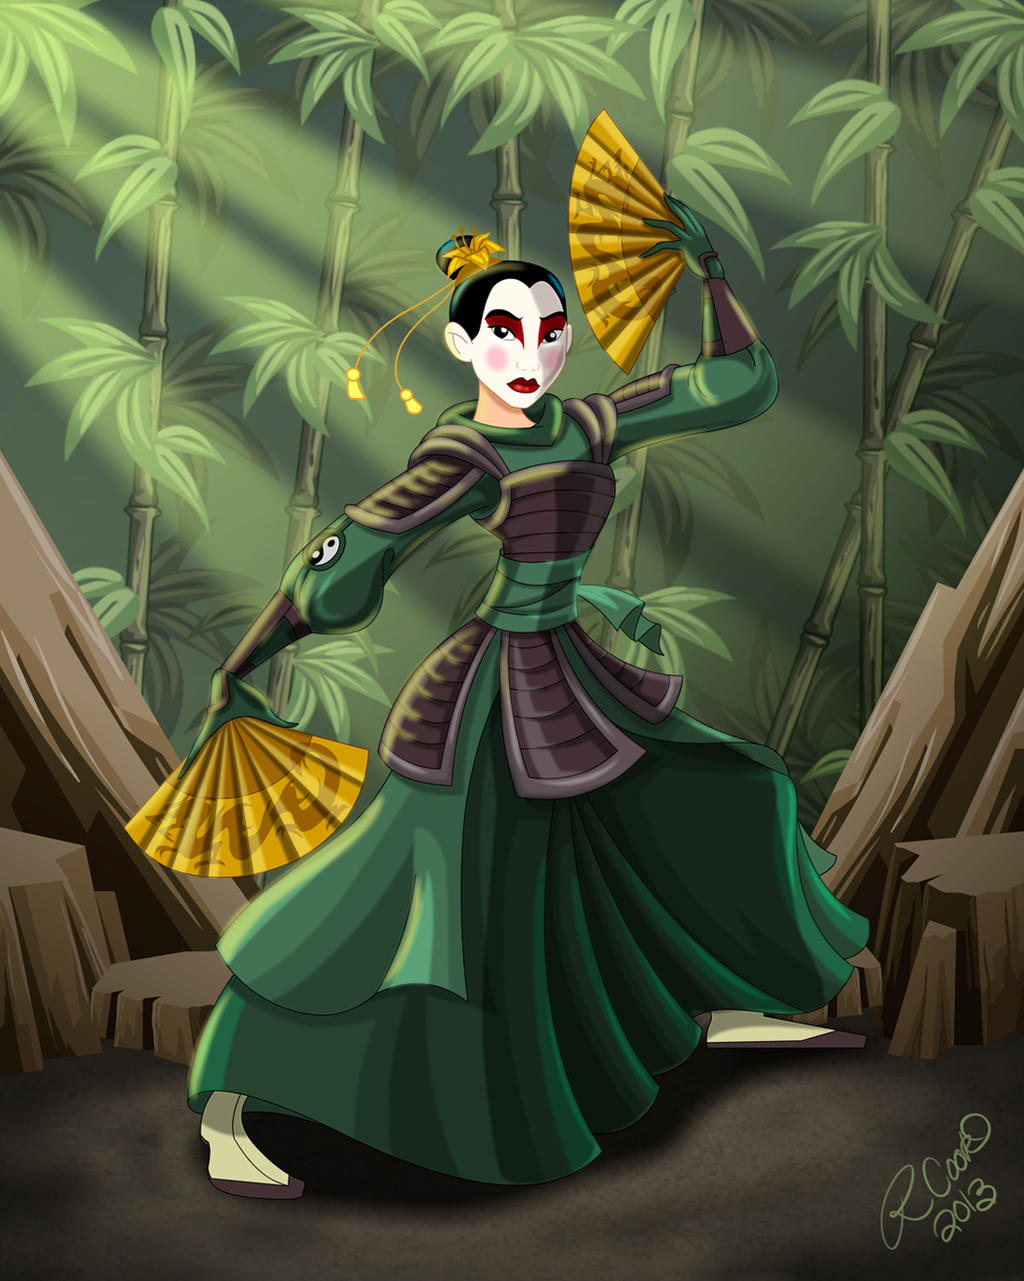 The Last Airbender Avatar Kyoshi: Mulan Of The Kyoshi Warriors By Racookie3 On DeviantArt